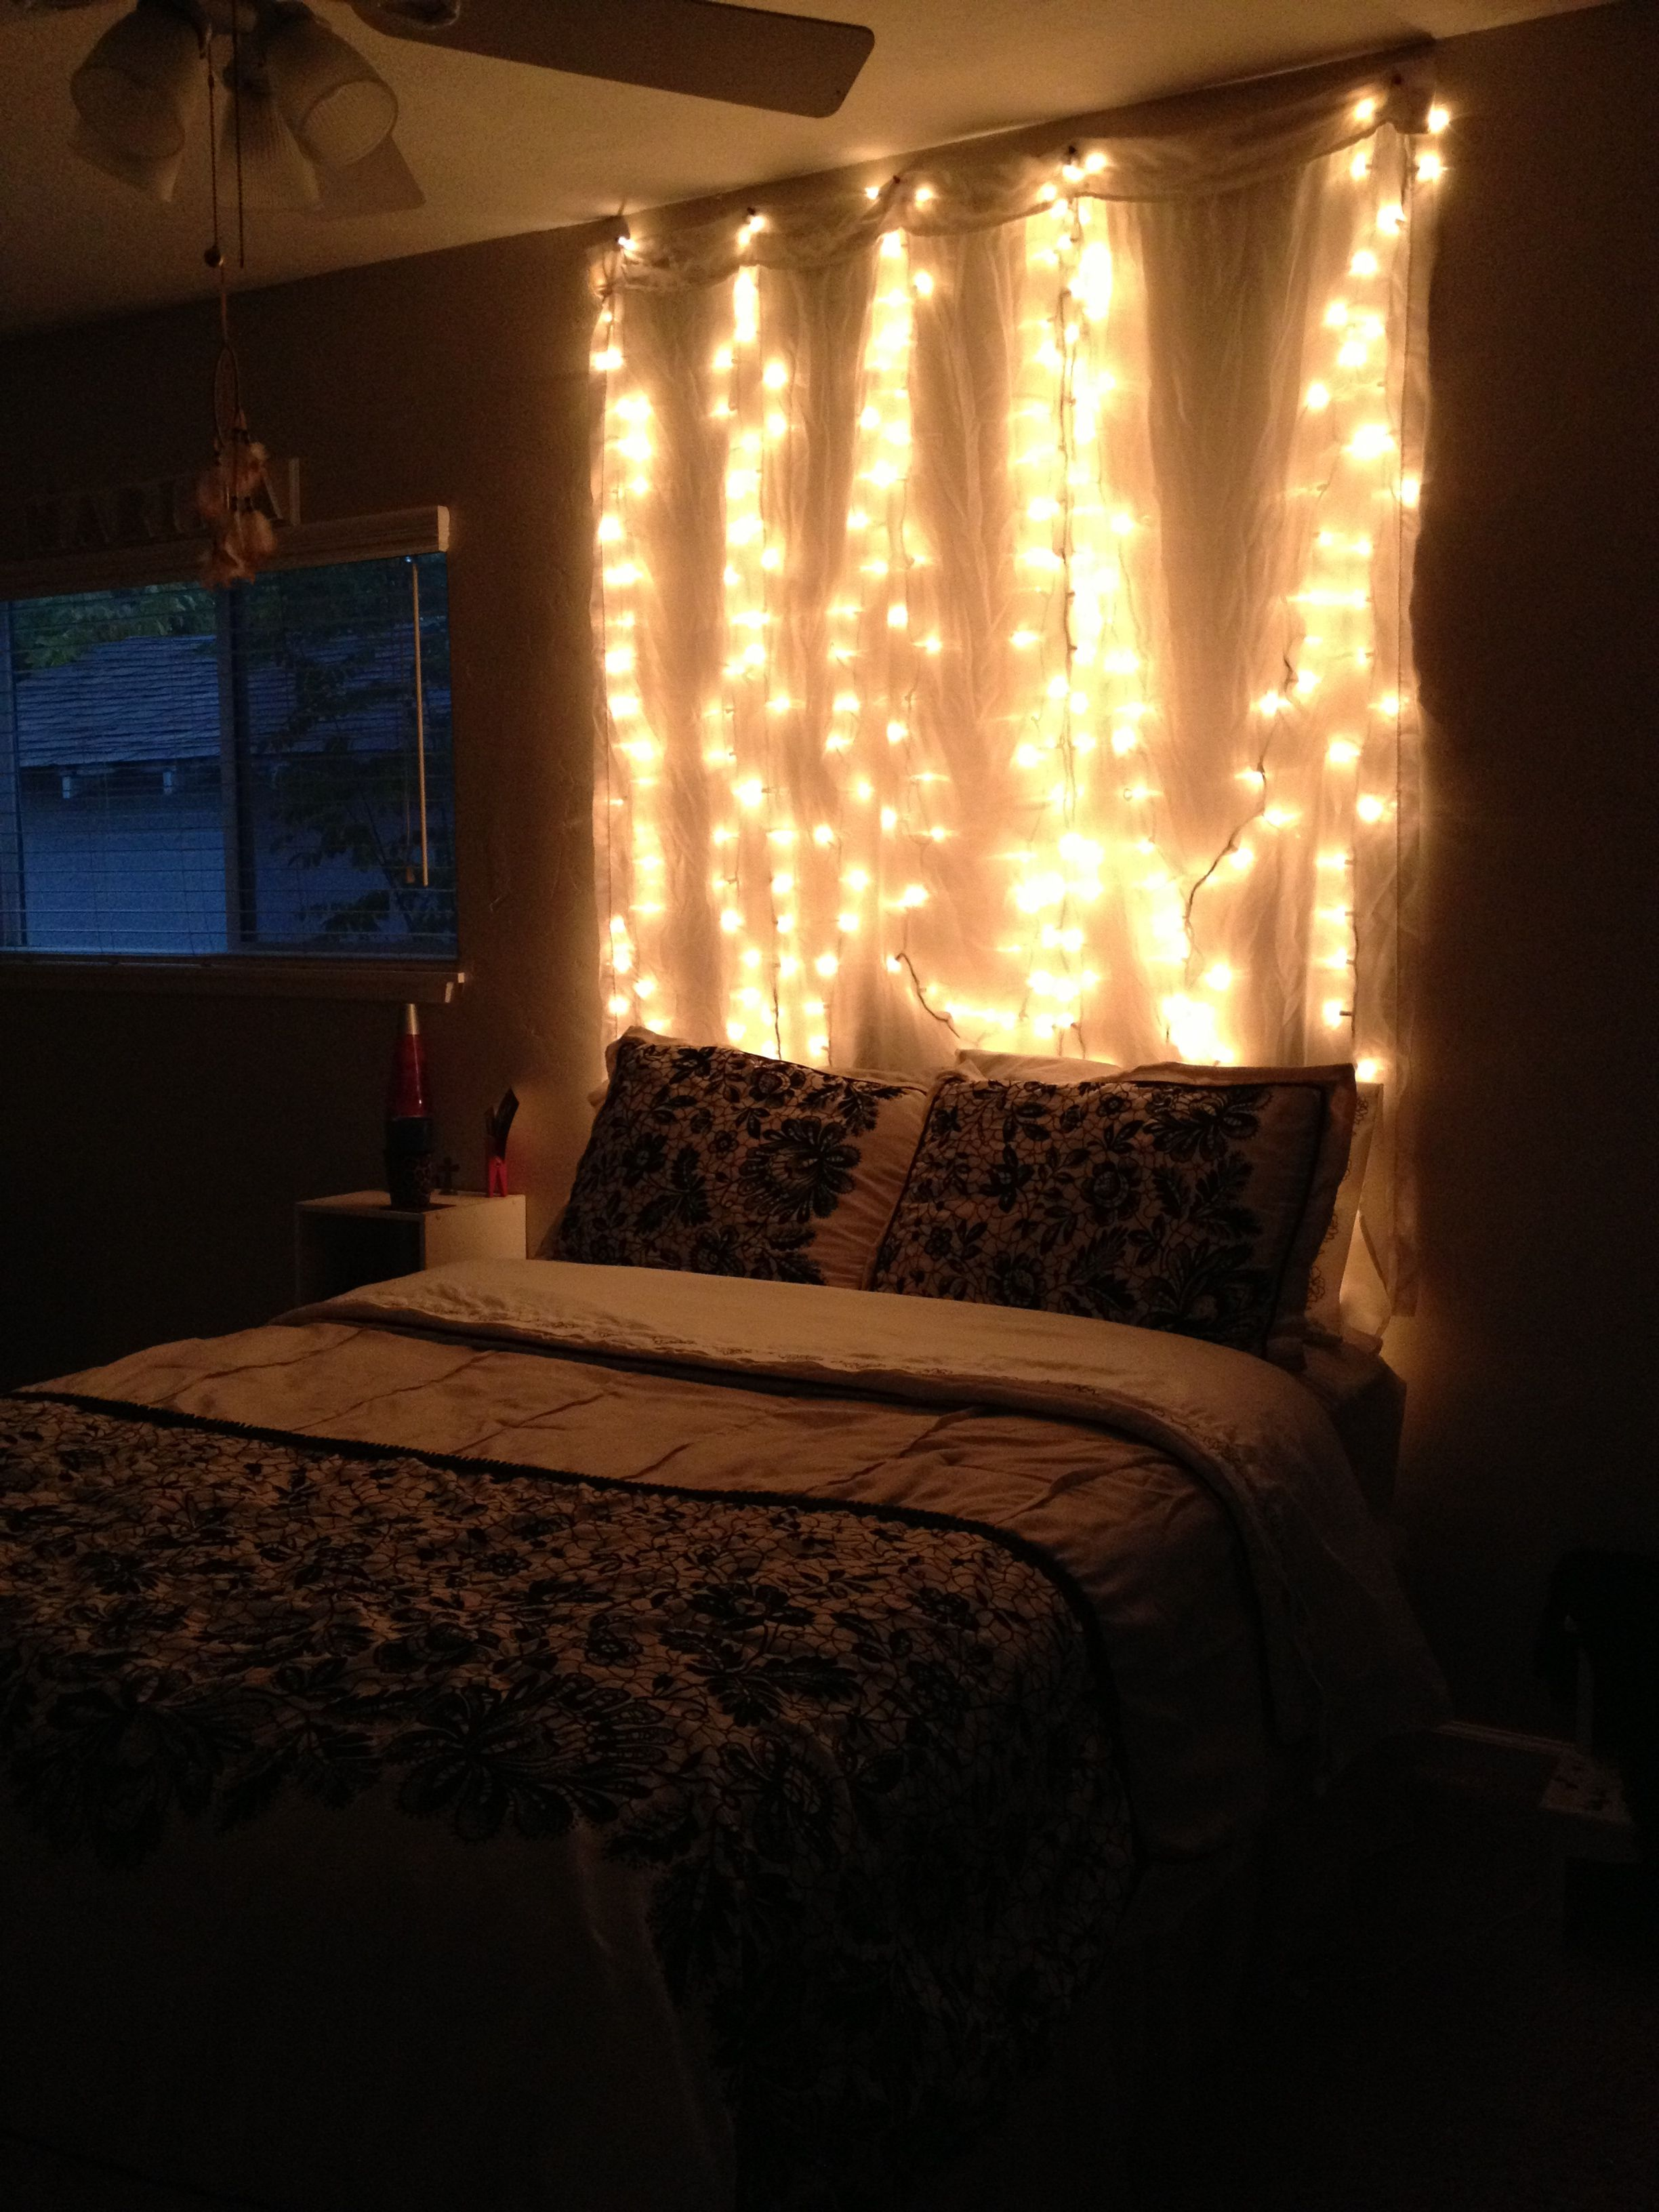 my light up headboard for the home luxurious bedrooms bedroom decor bedroom. Black Bedroom Furniture Sets. Home Design Ideas